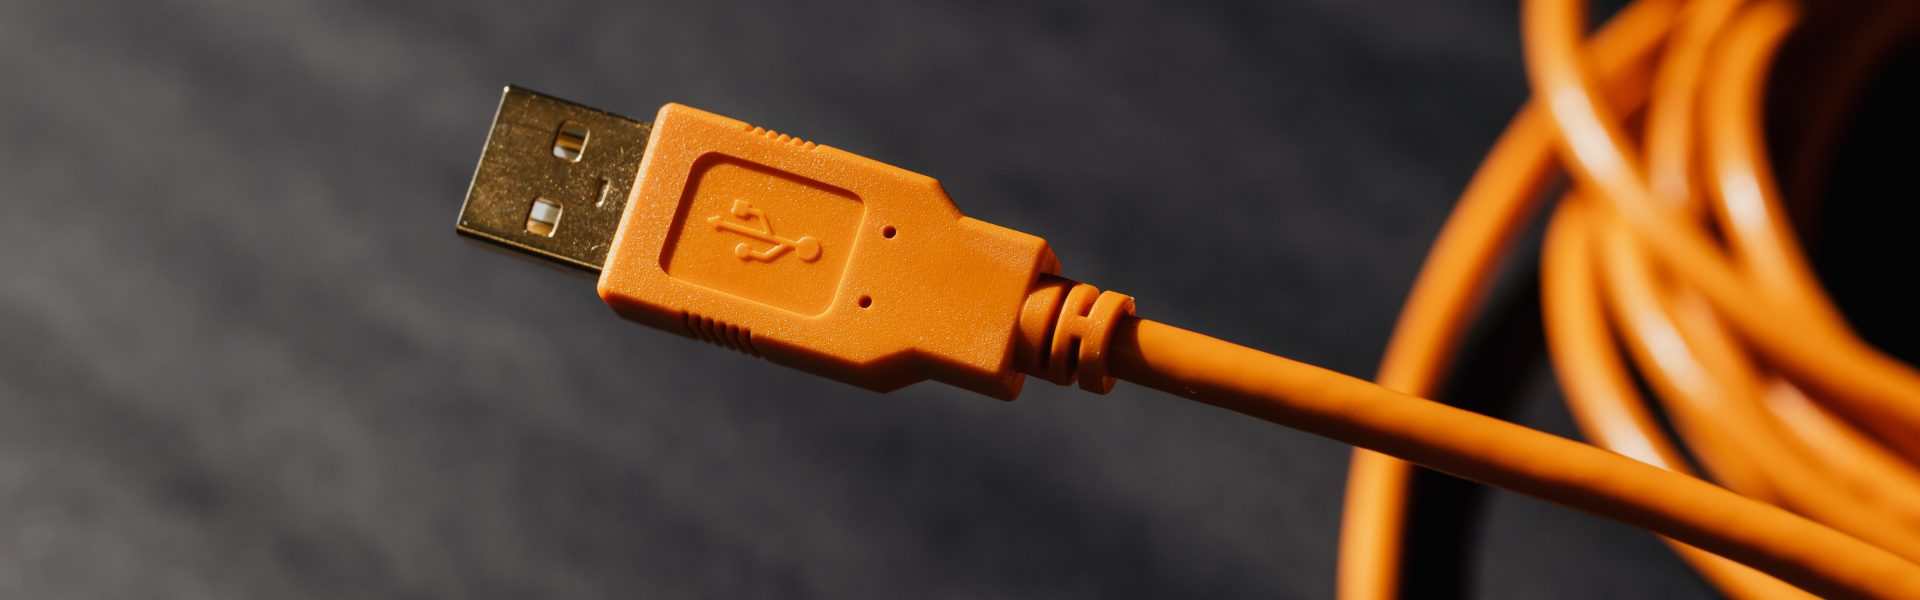 câble USB de couleur orange